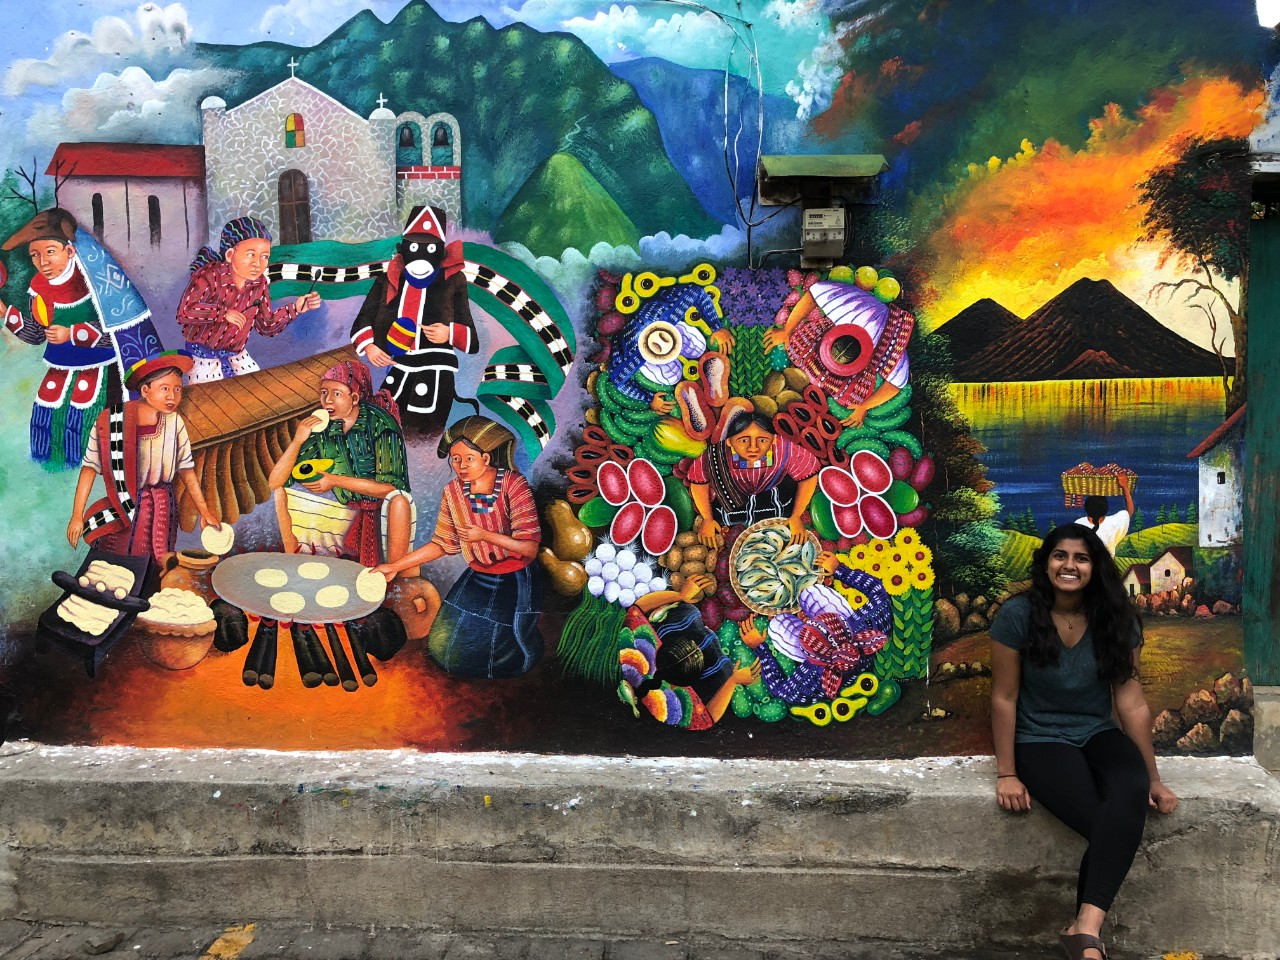 A&S and College of Medicine graduate Priyanka Sai Vemuru in Guatemala where she volunteered to work with people with disabilities.